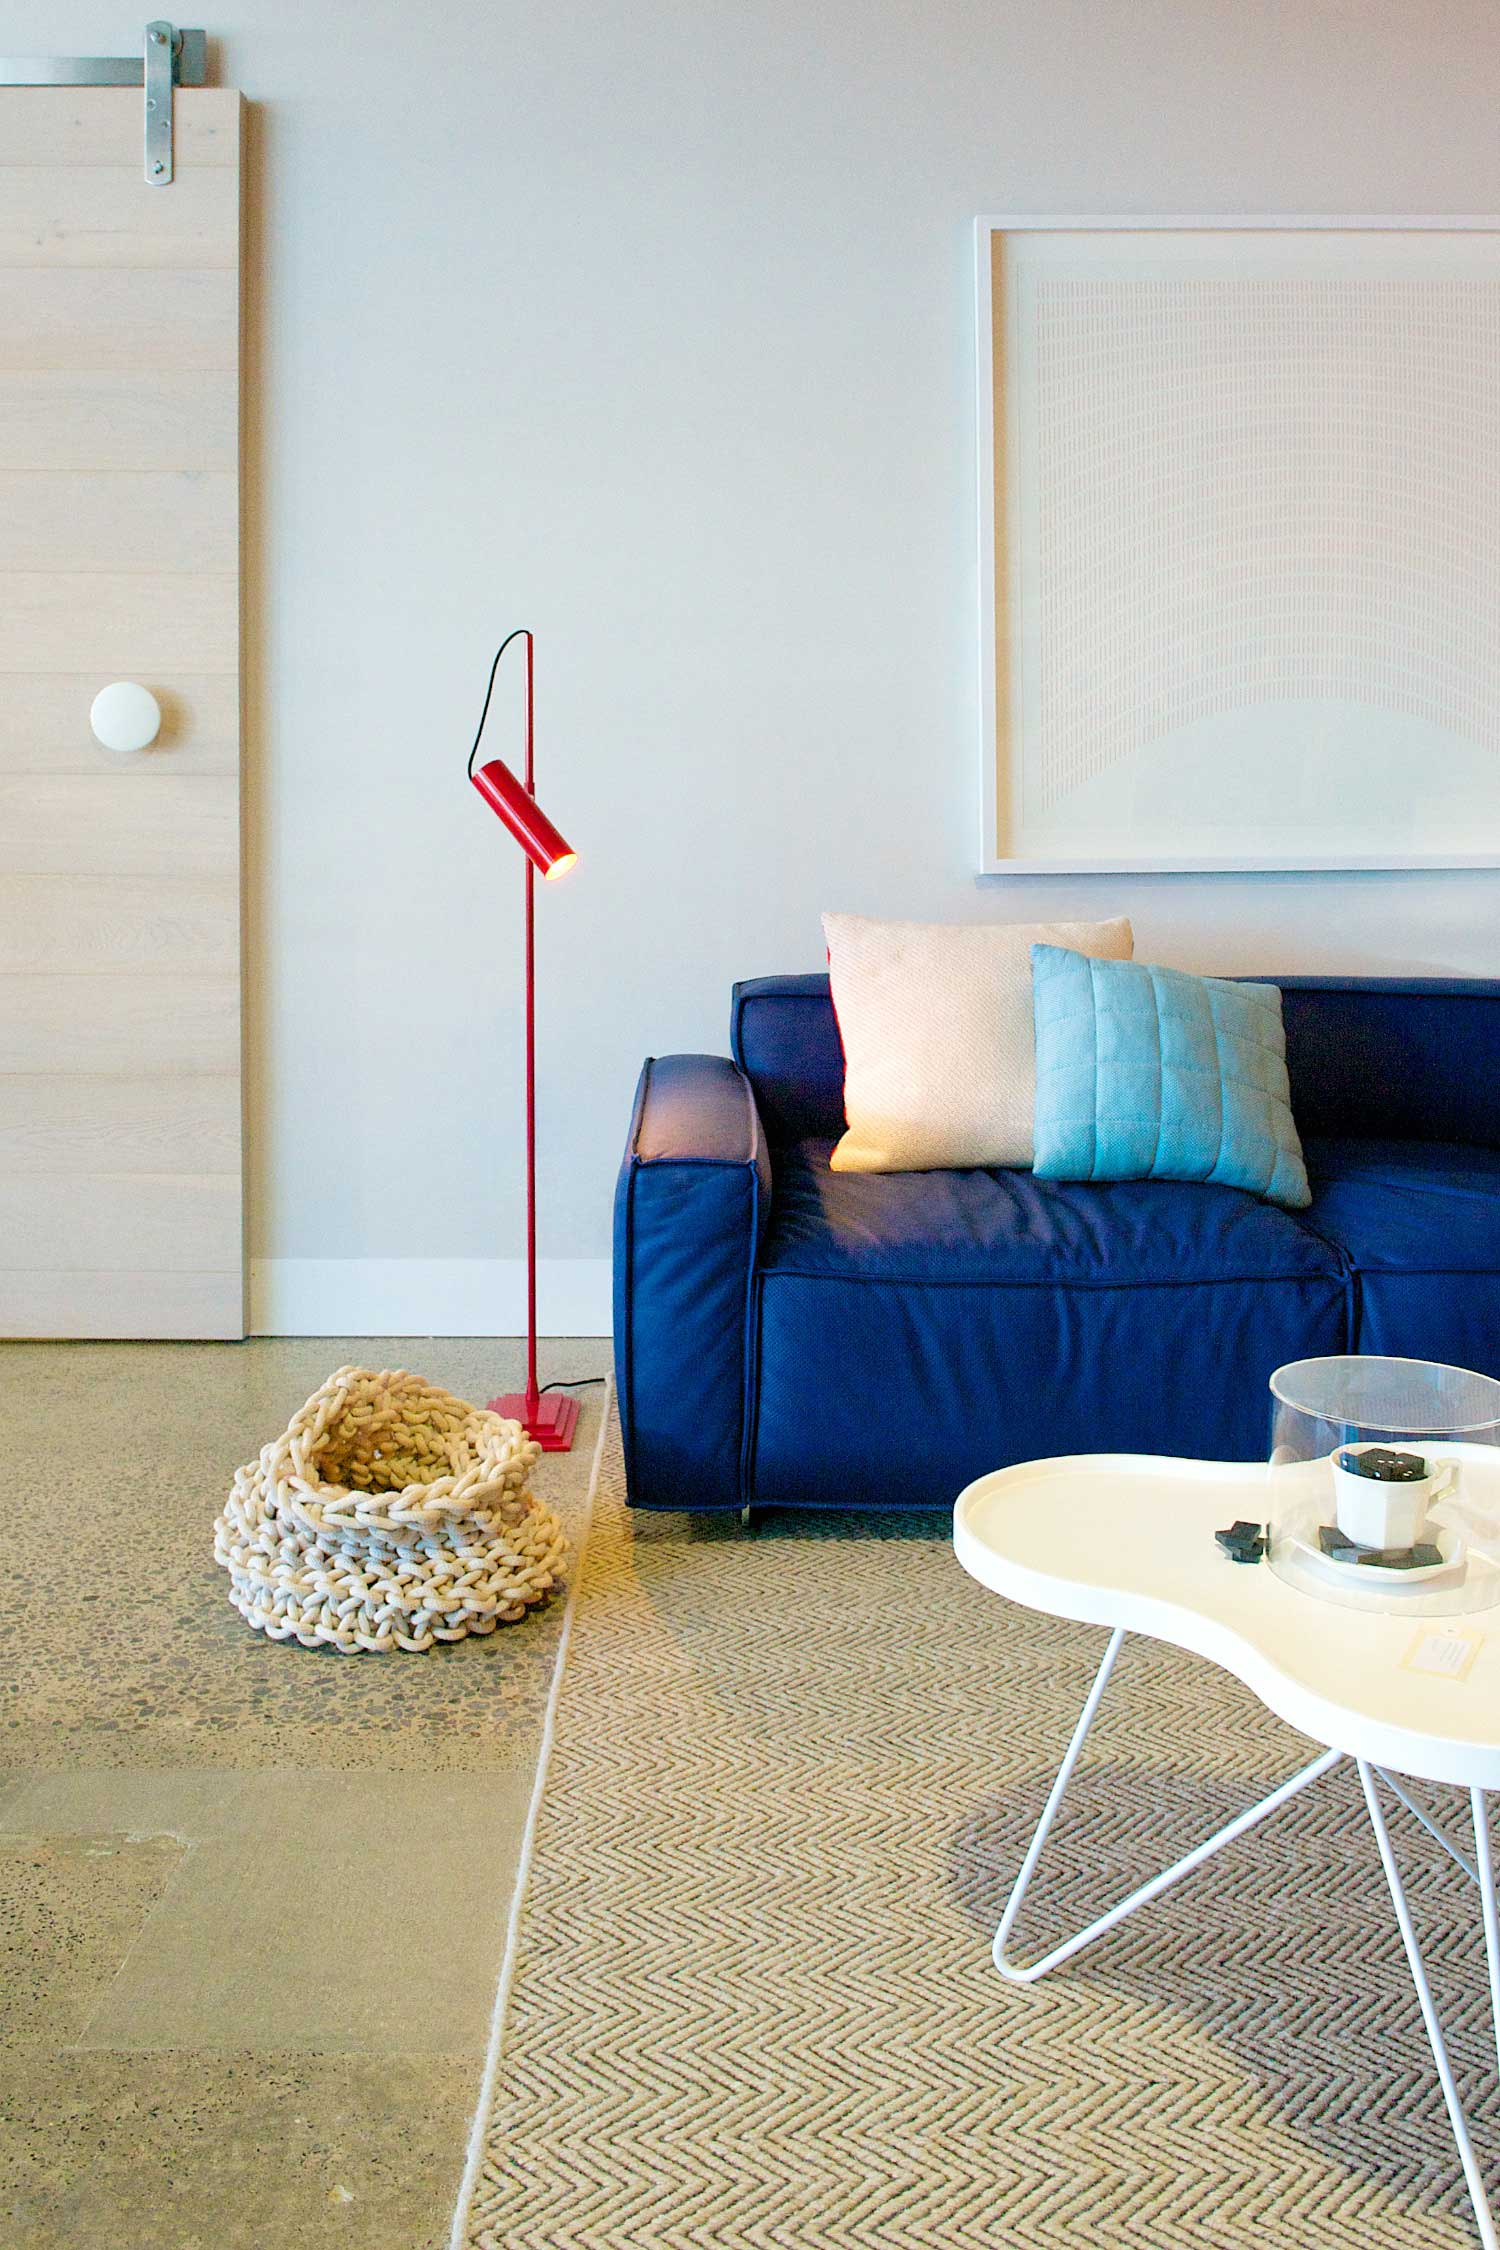 Fred International Sydney Showroom by Yellowtrace. Boxplay sofa by Claesson Koivisto Rune, Muuto Cushions, Red Nomad floor lamp from Ruben Lighting, Swedese White Flower Mono coffee table, Armadillo & Co Herringbone Weave rug, Knitted basket by Little Dandelion, artwork by I Need Nice Things.